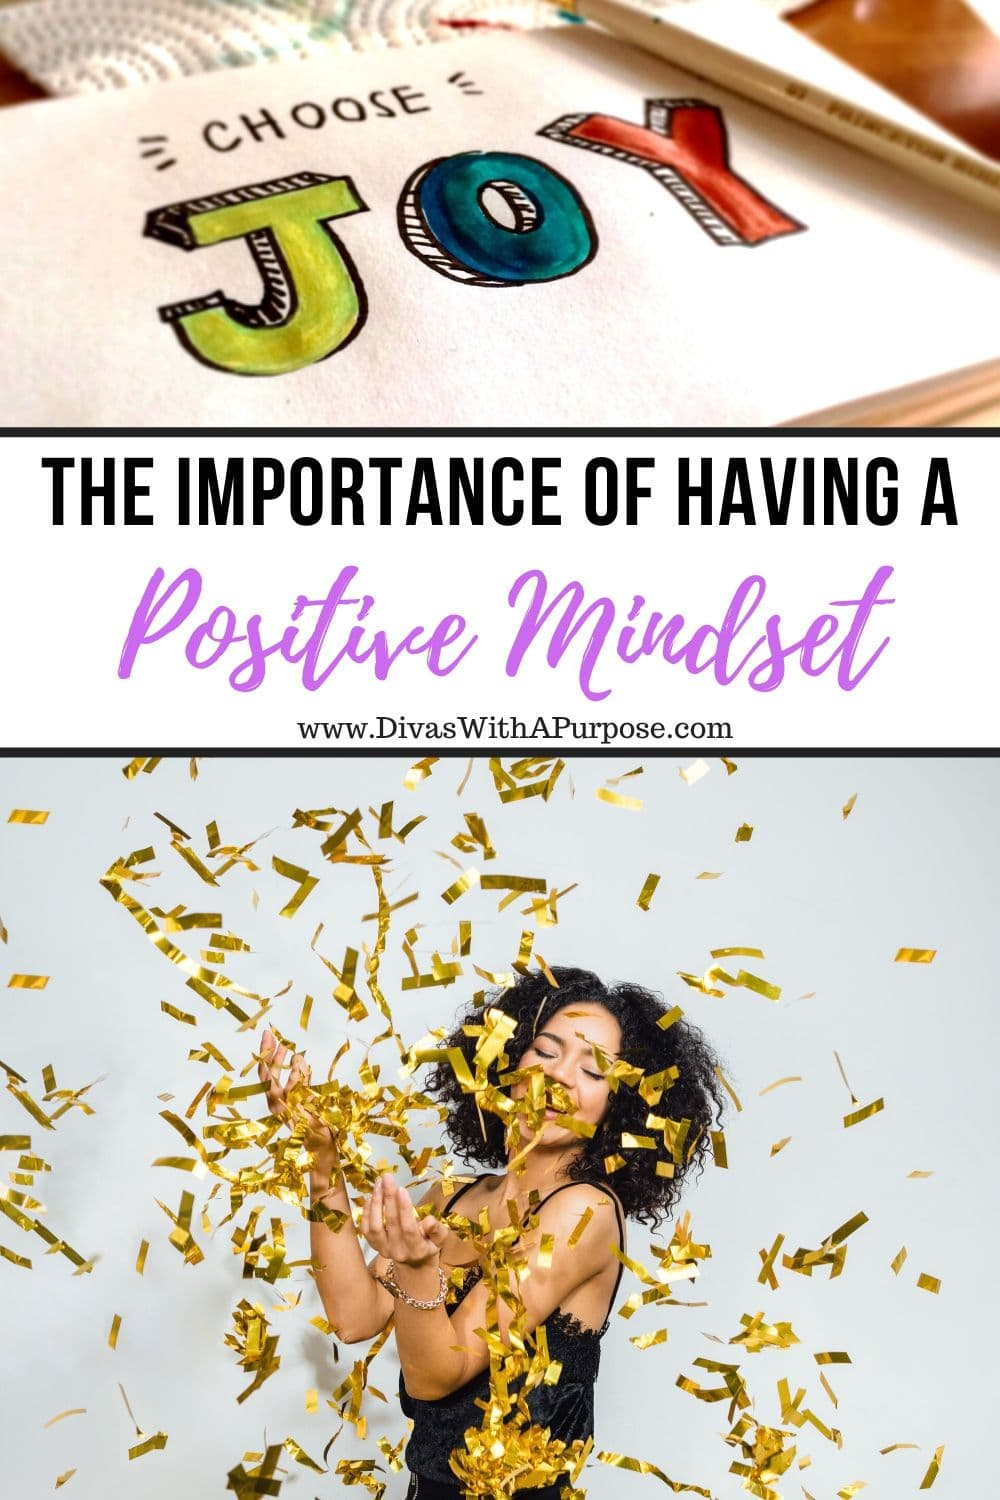 The importance of having a positive mindset throughout your daily routine